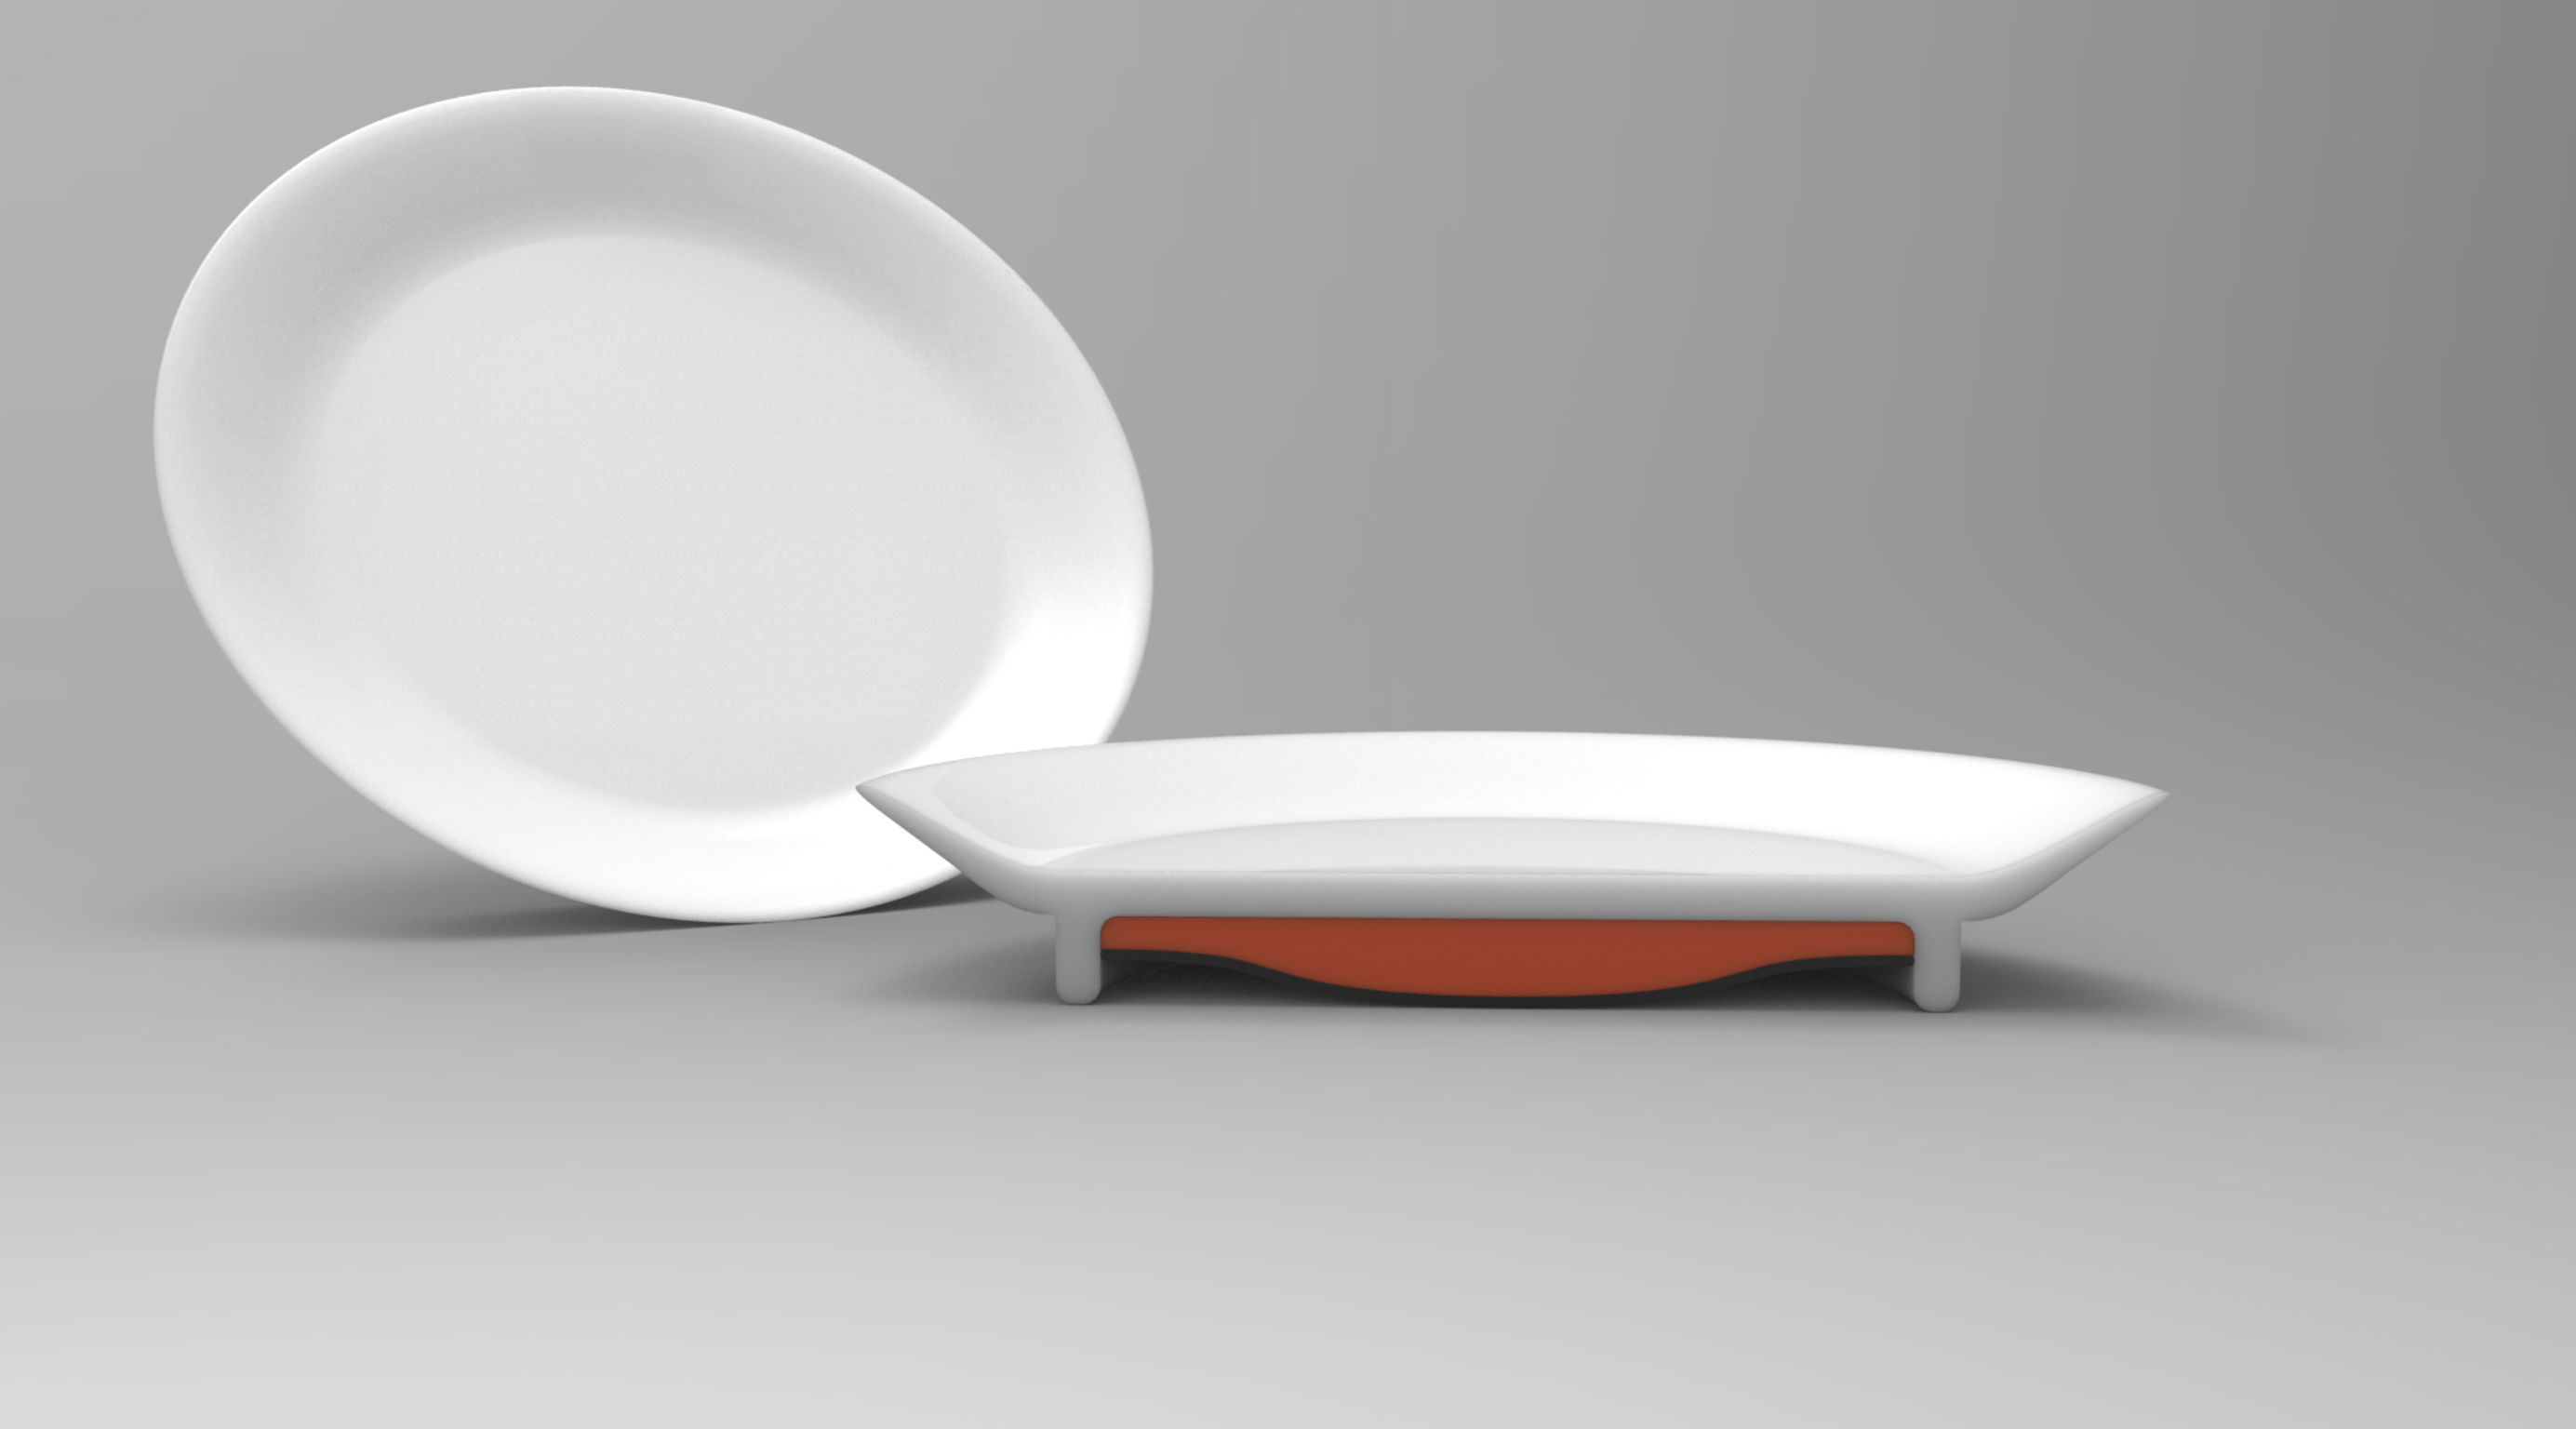 Self-warming Plate & Self-warming Plate - Entry - iF WORLD DESIGN GUIDE